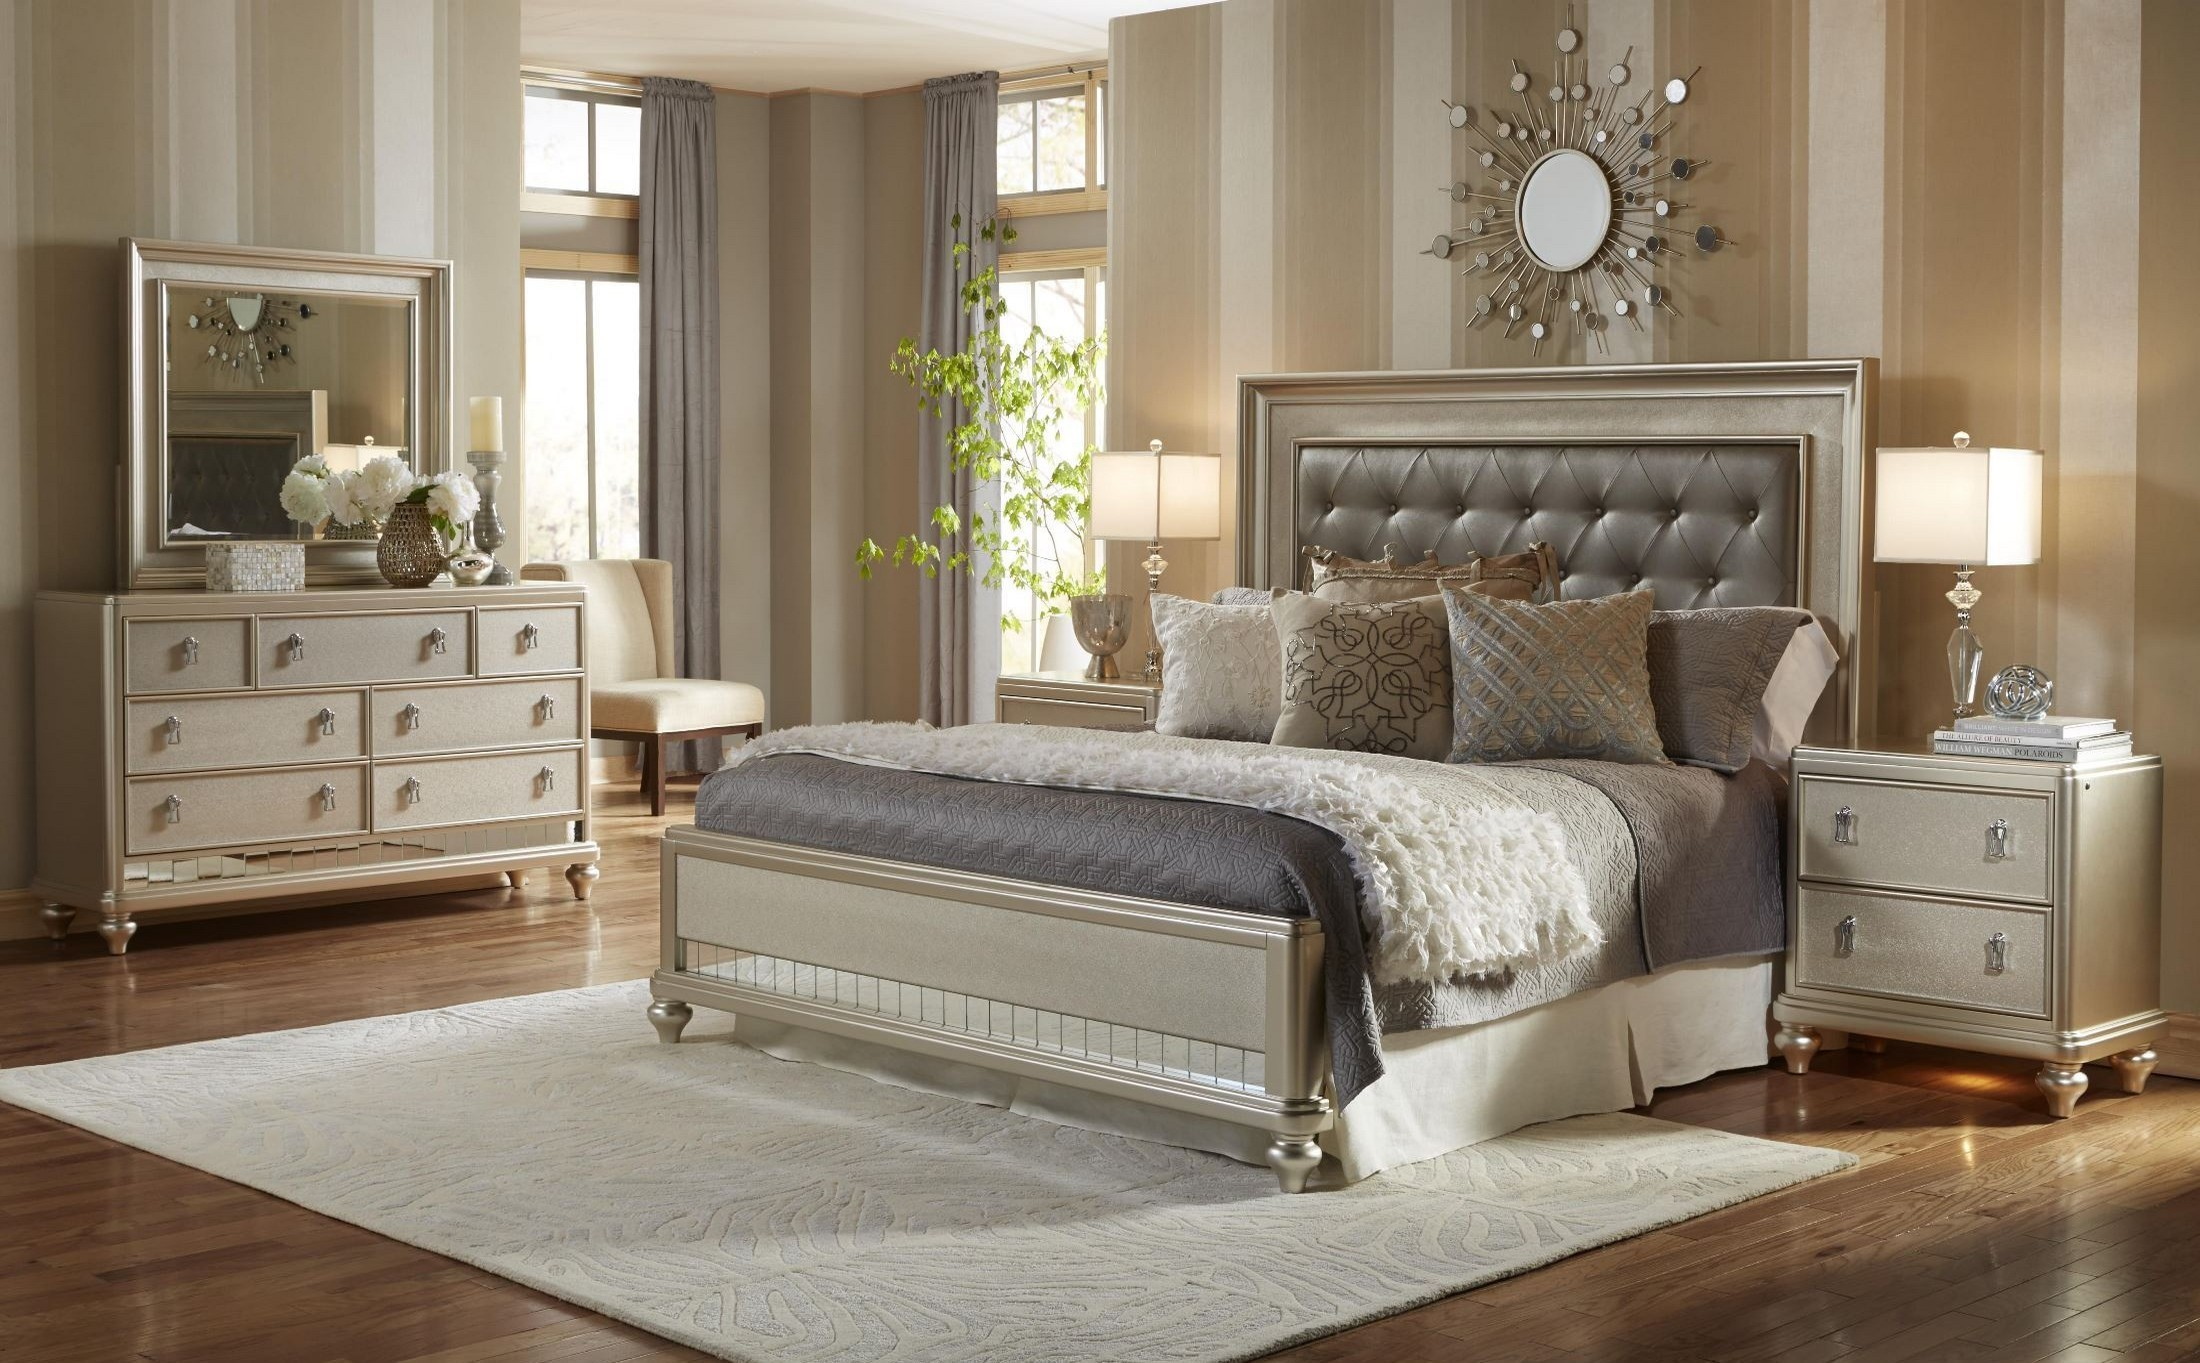 diva panel bedroom set from samuel lawrence (8808-255-257-400